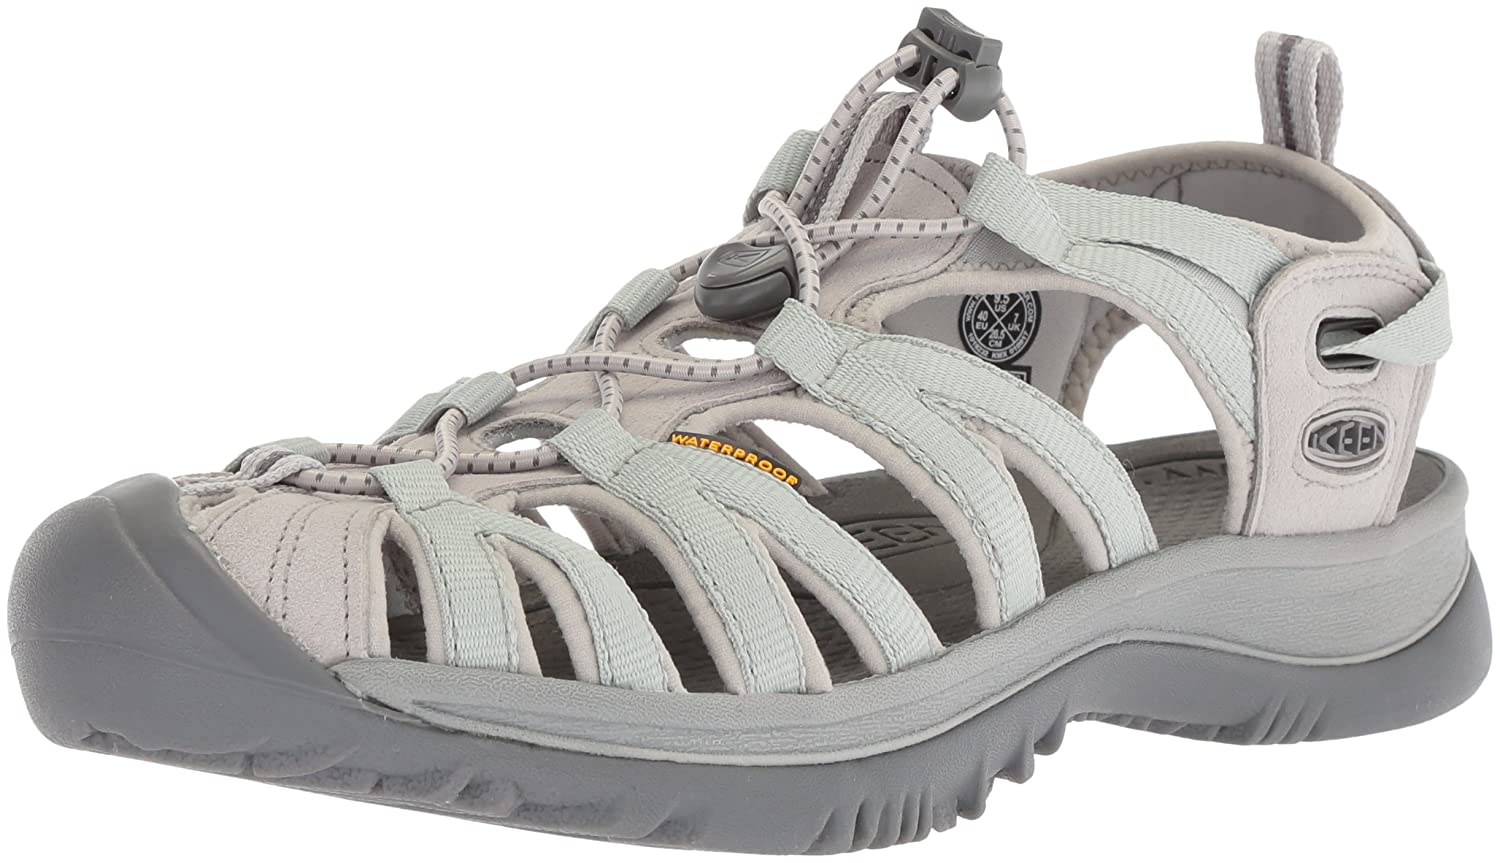 KEEN Women's Whisper-w Sandal B071CL1NKB 8.5 B(M) US|Vapor/Steel Grey